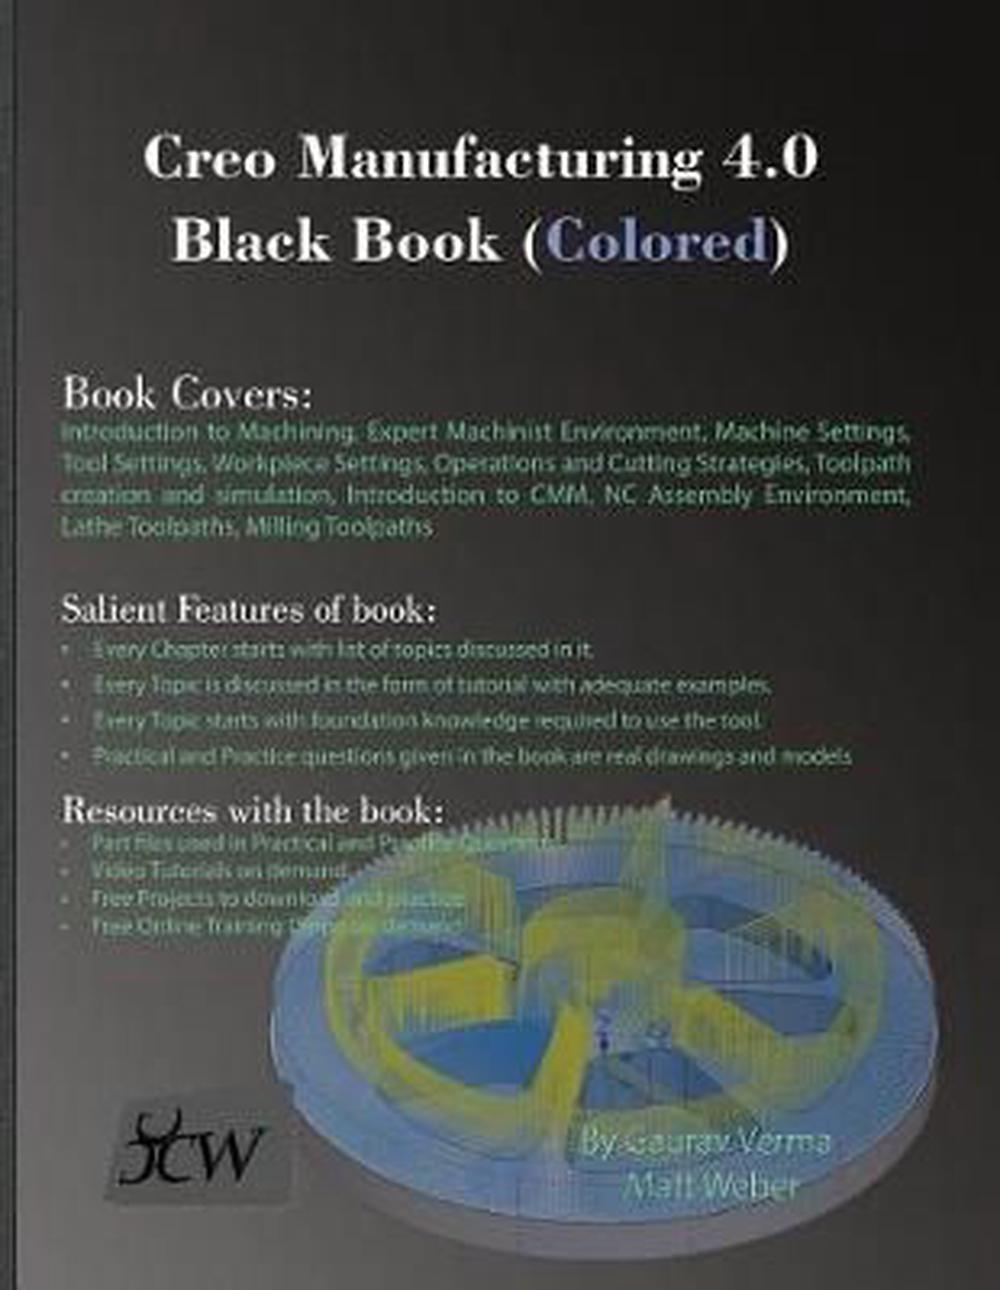 Details about Creo Manufacturing 4 0 Black Book (Colored) by Gaurav Verma  (English) Paperback